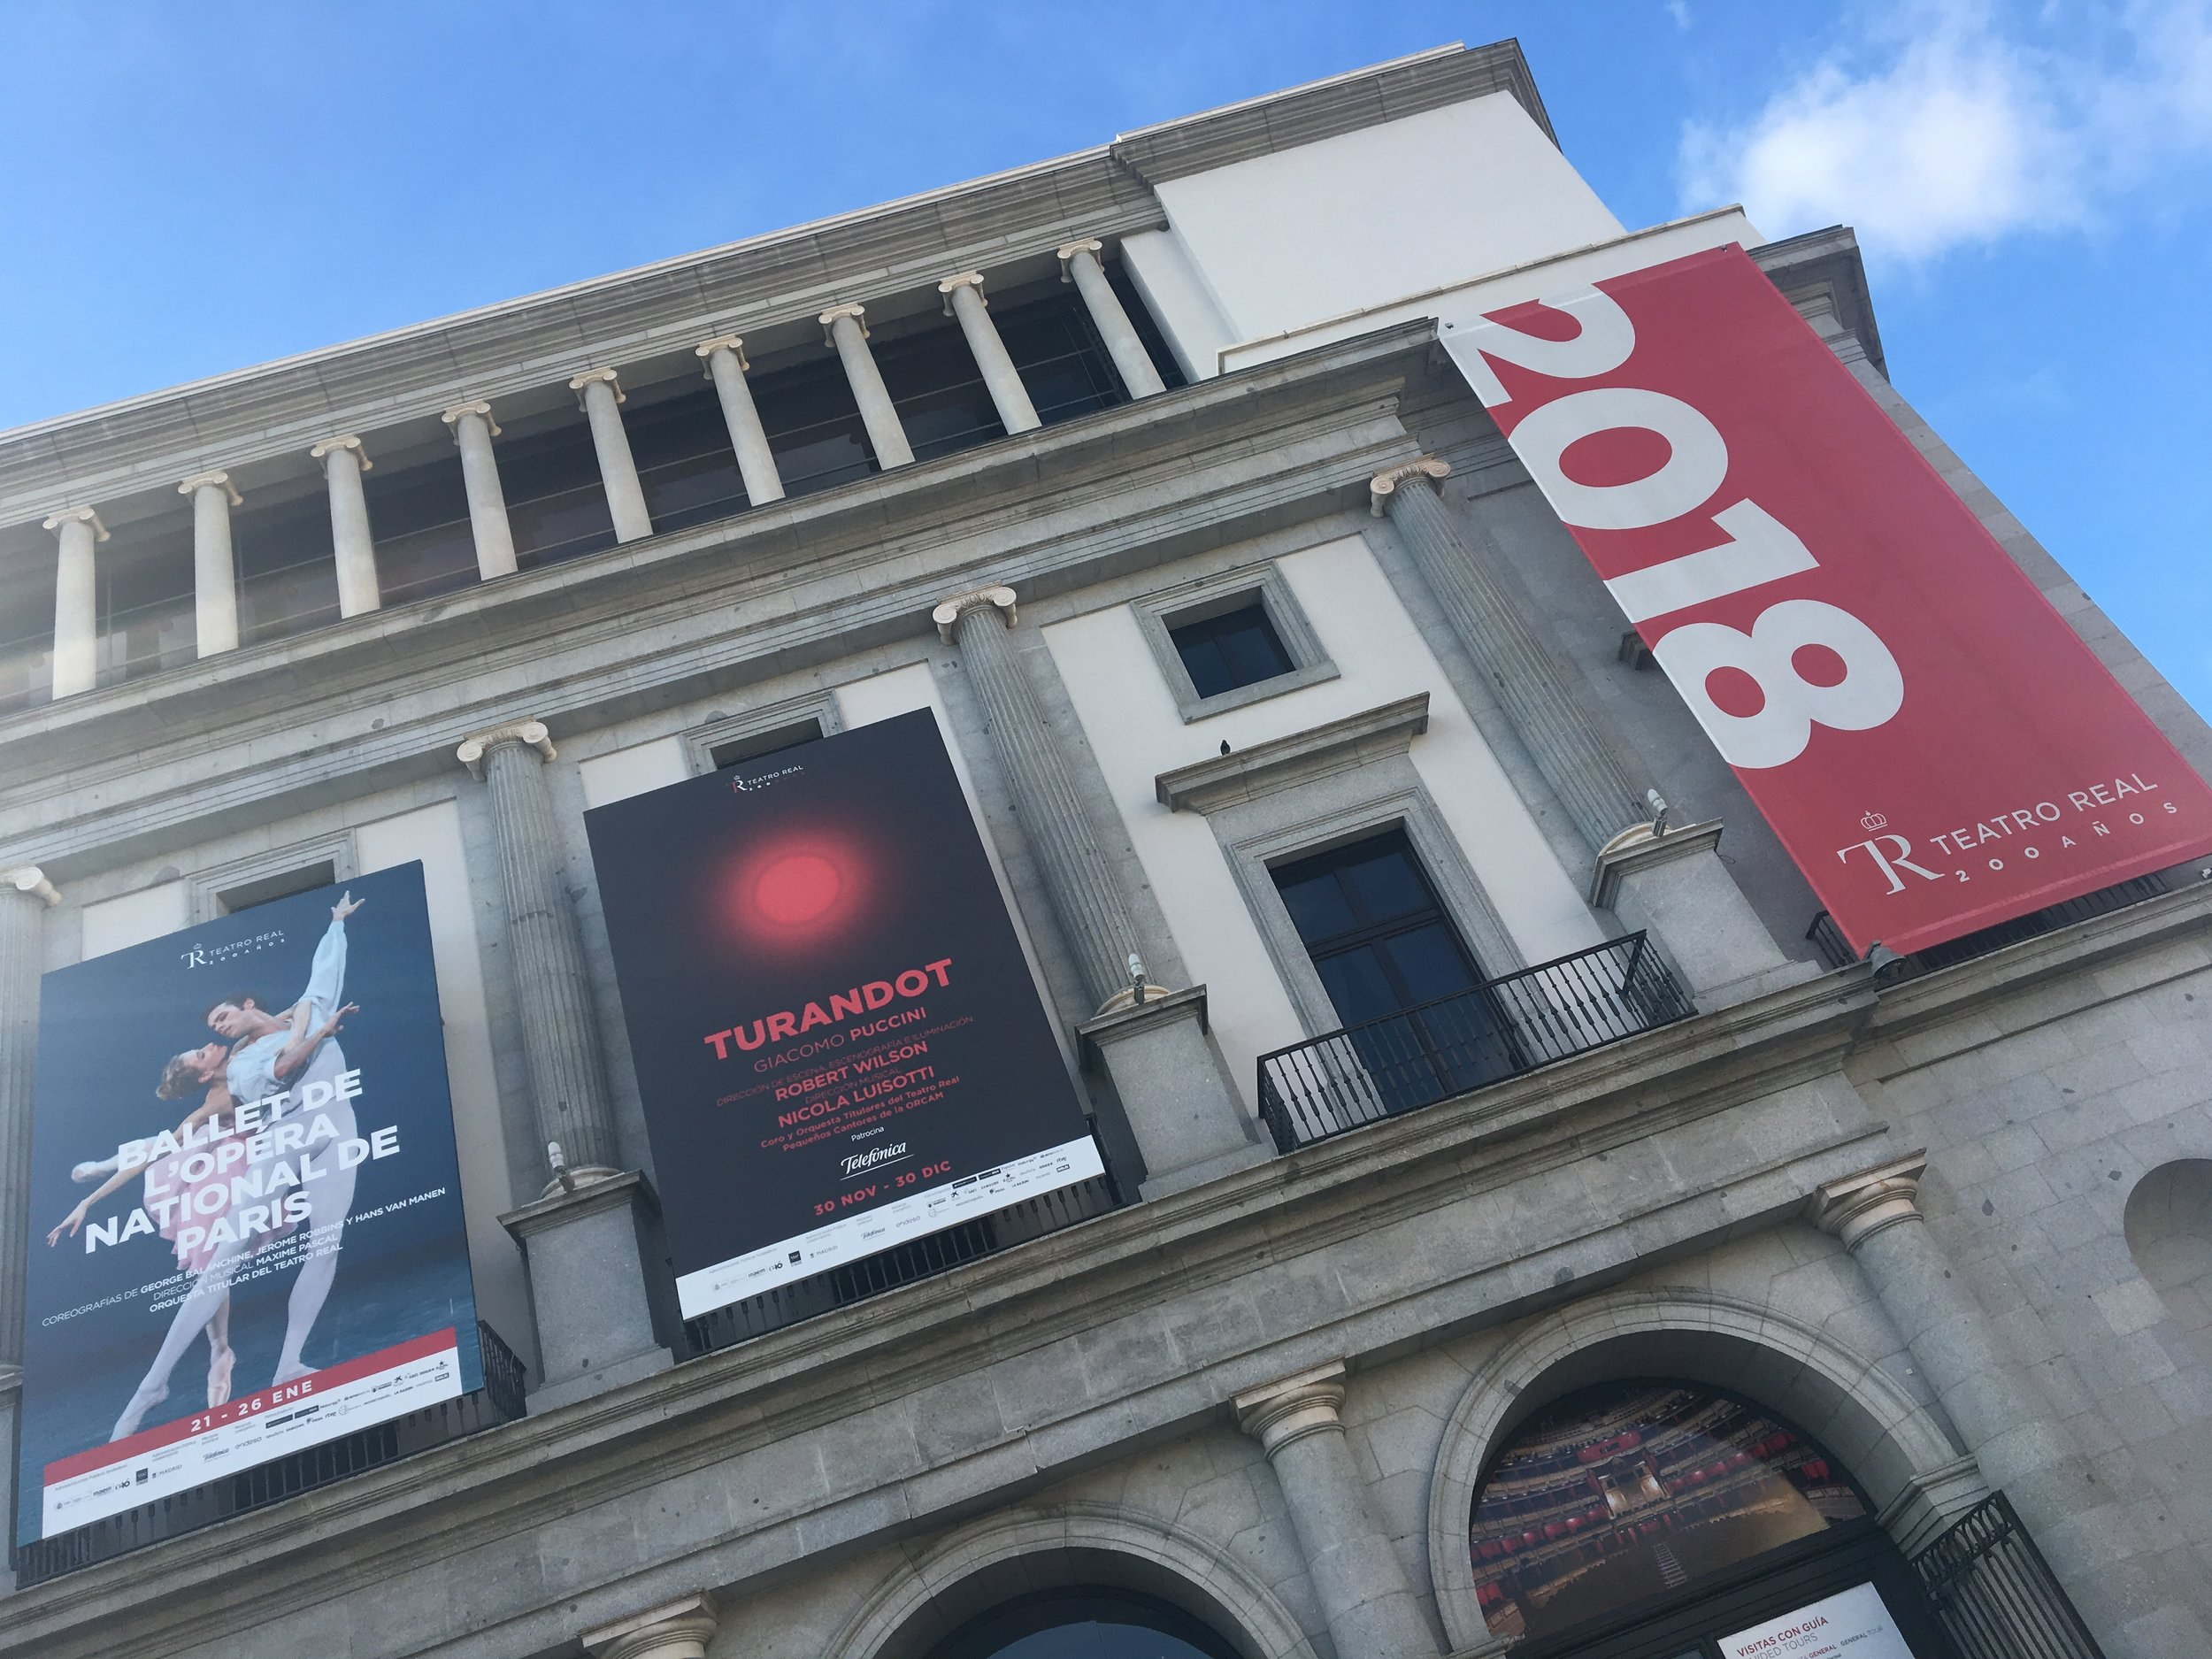 the day before Teatro Real Madrid